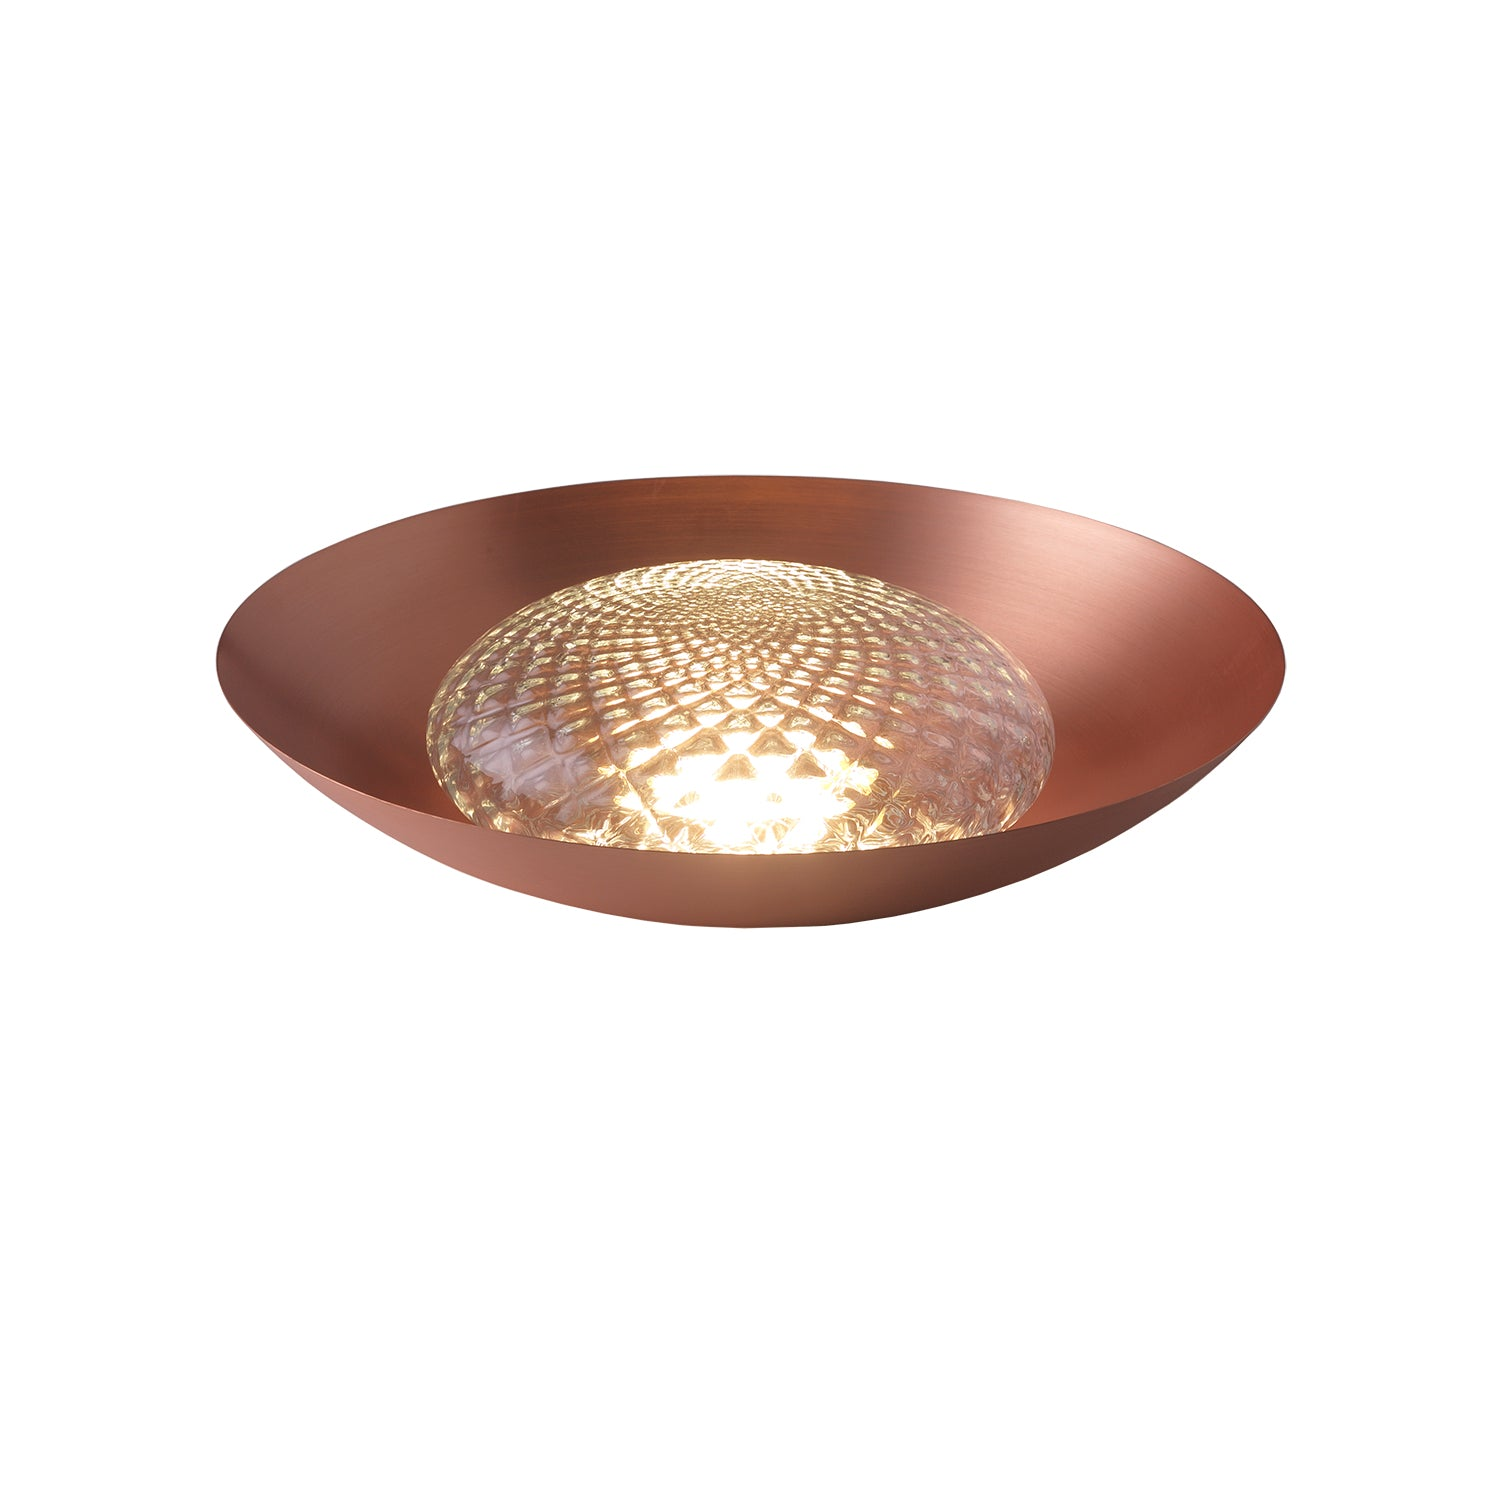 Wok Table Lamp - Satin Copper + Clear Patterned Glass